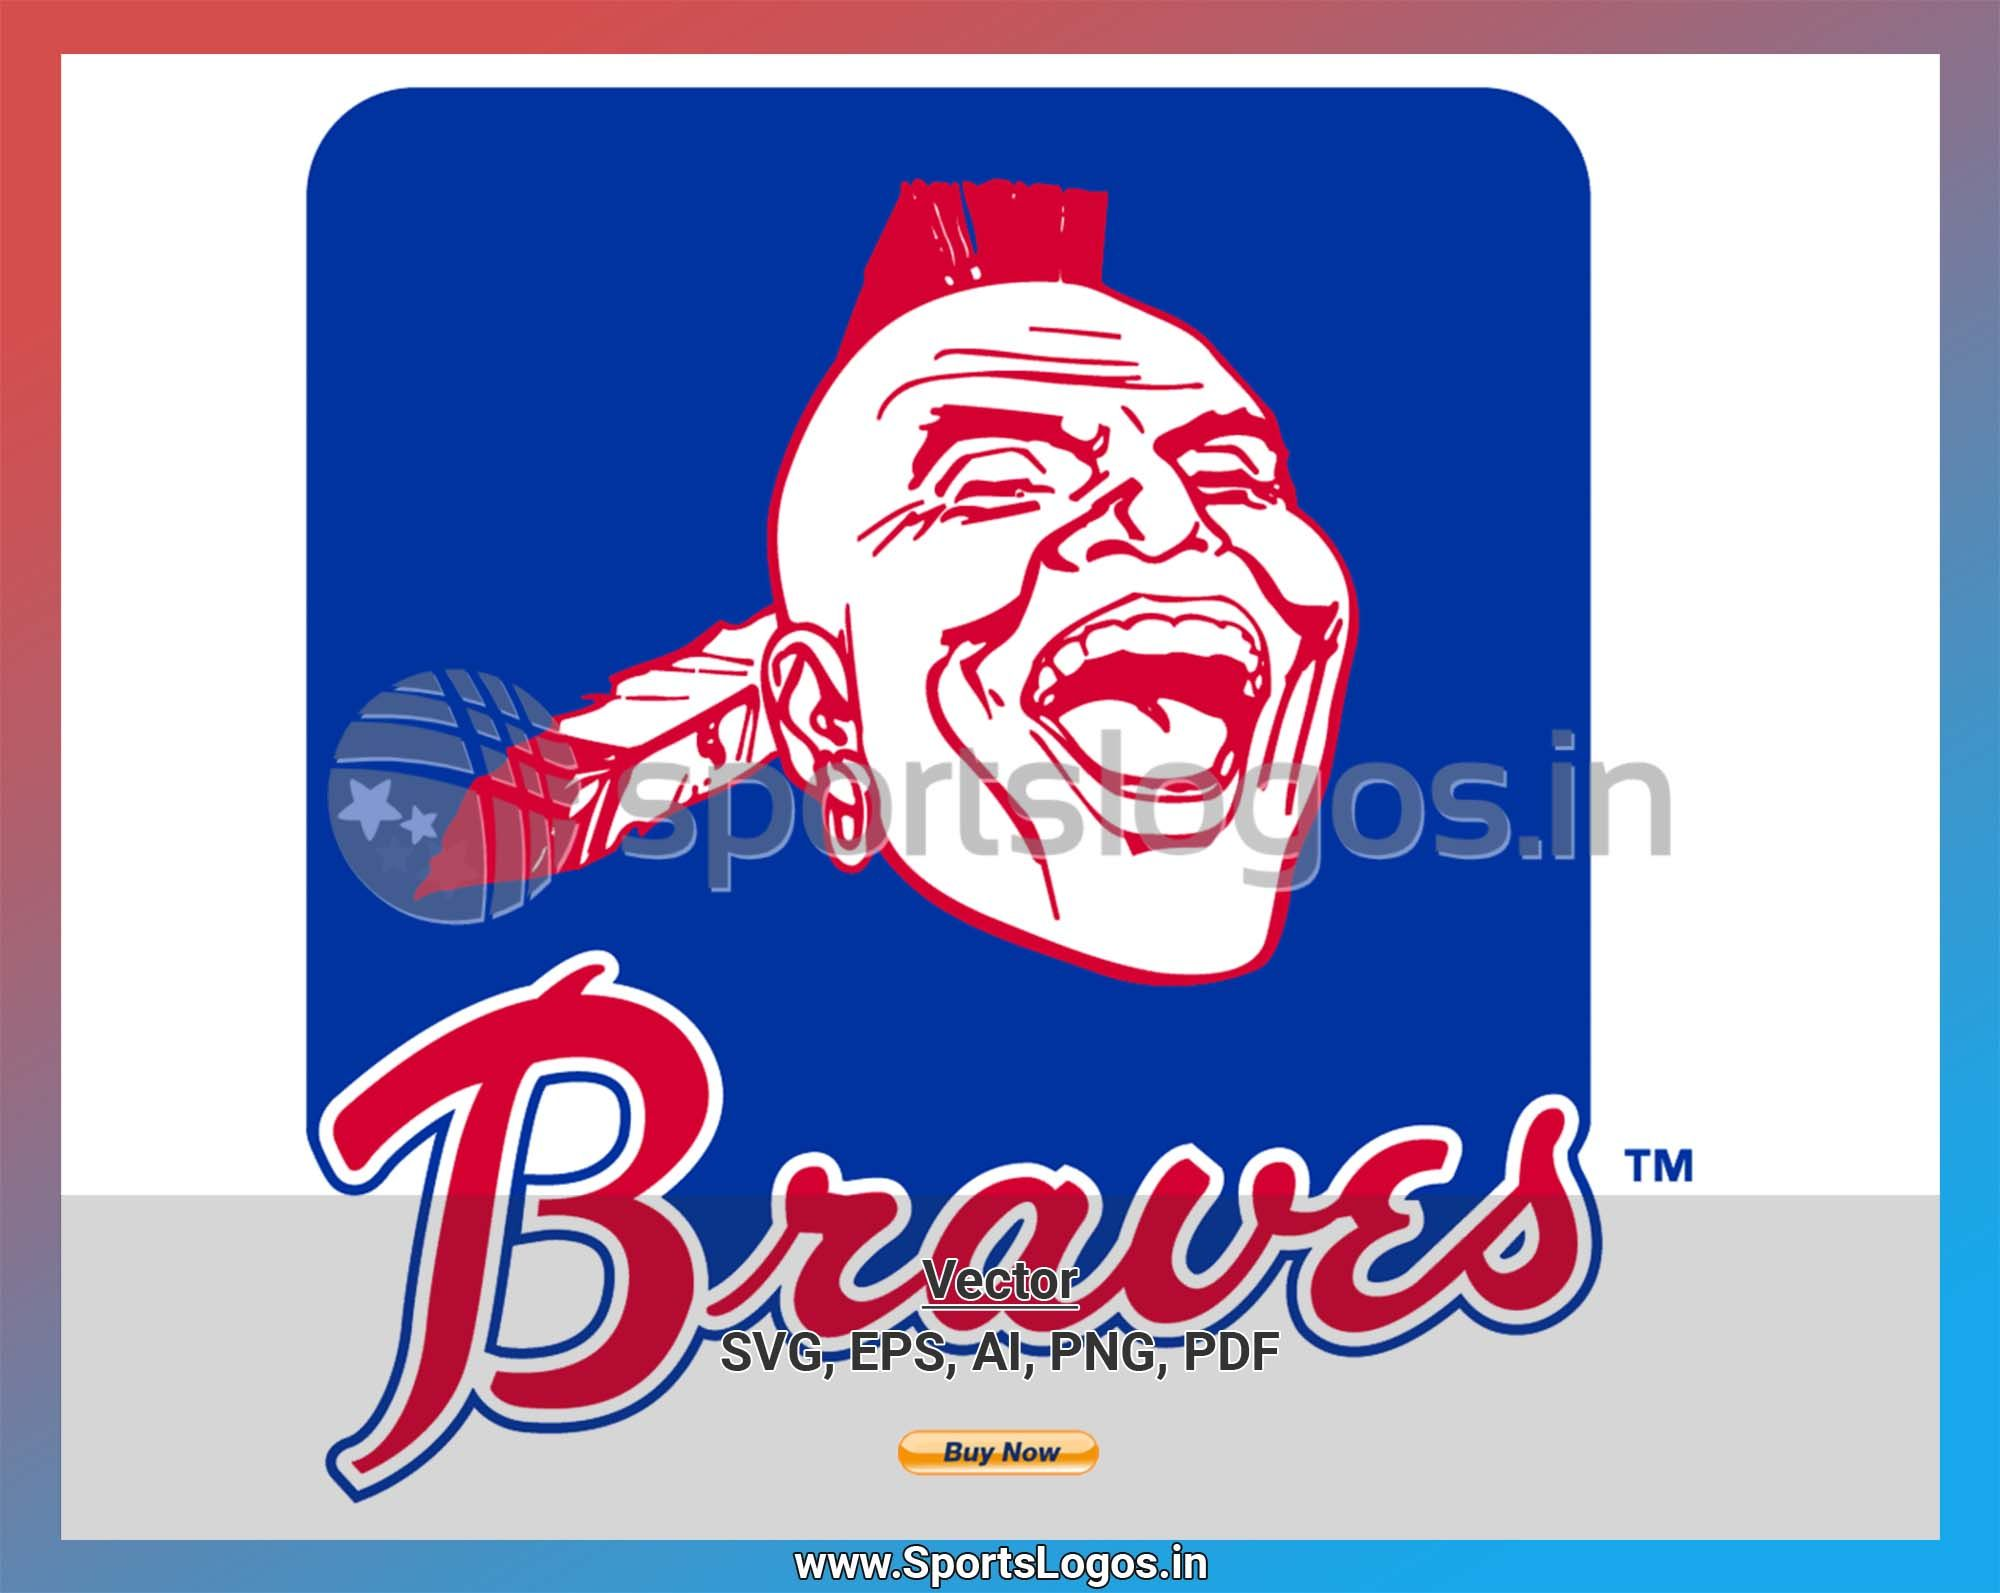 Atlanta Braves Baseball Sports Vector Svg Logo In 5 Formats Spln000201 Sports Logos Embroidery Vector For Nfl Nba Nhl Mlb Milb And More Atlanta Braves Baseball Atlanta Braves Embroidery Logo